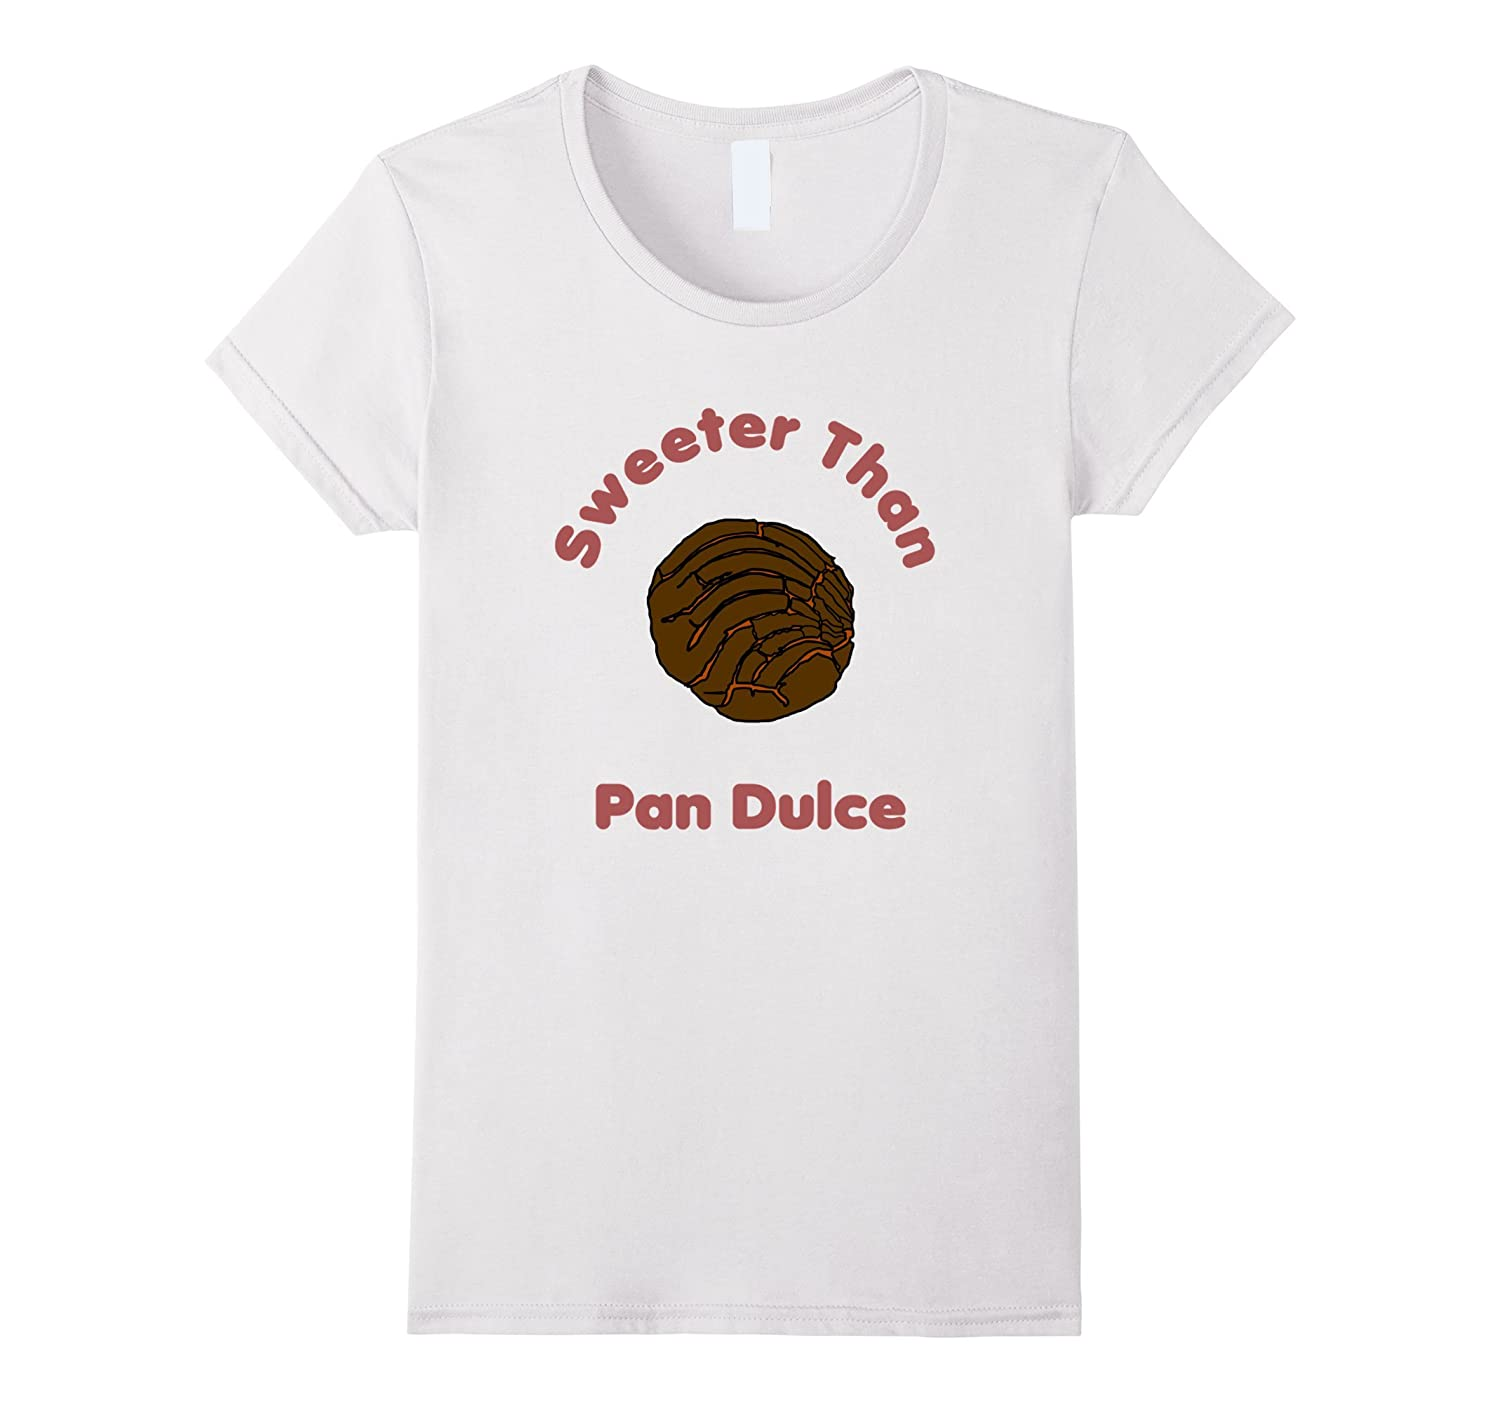 Amazon.com: Sweeter Than Pan Dulce Concha Mexican Bread T-Shirt: Clothing